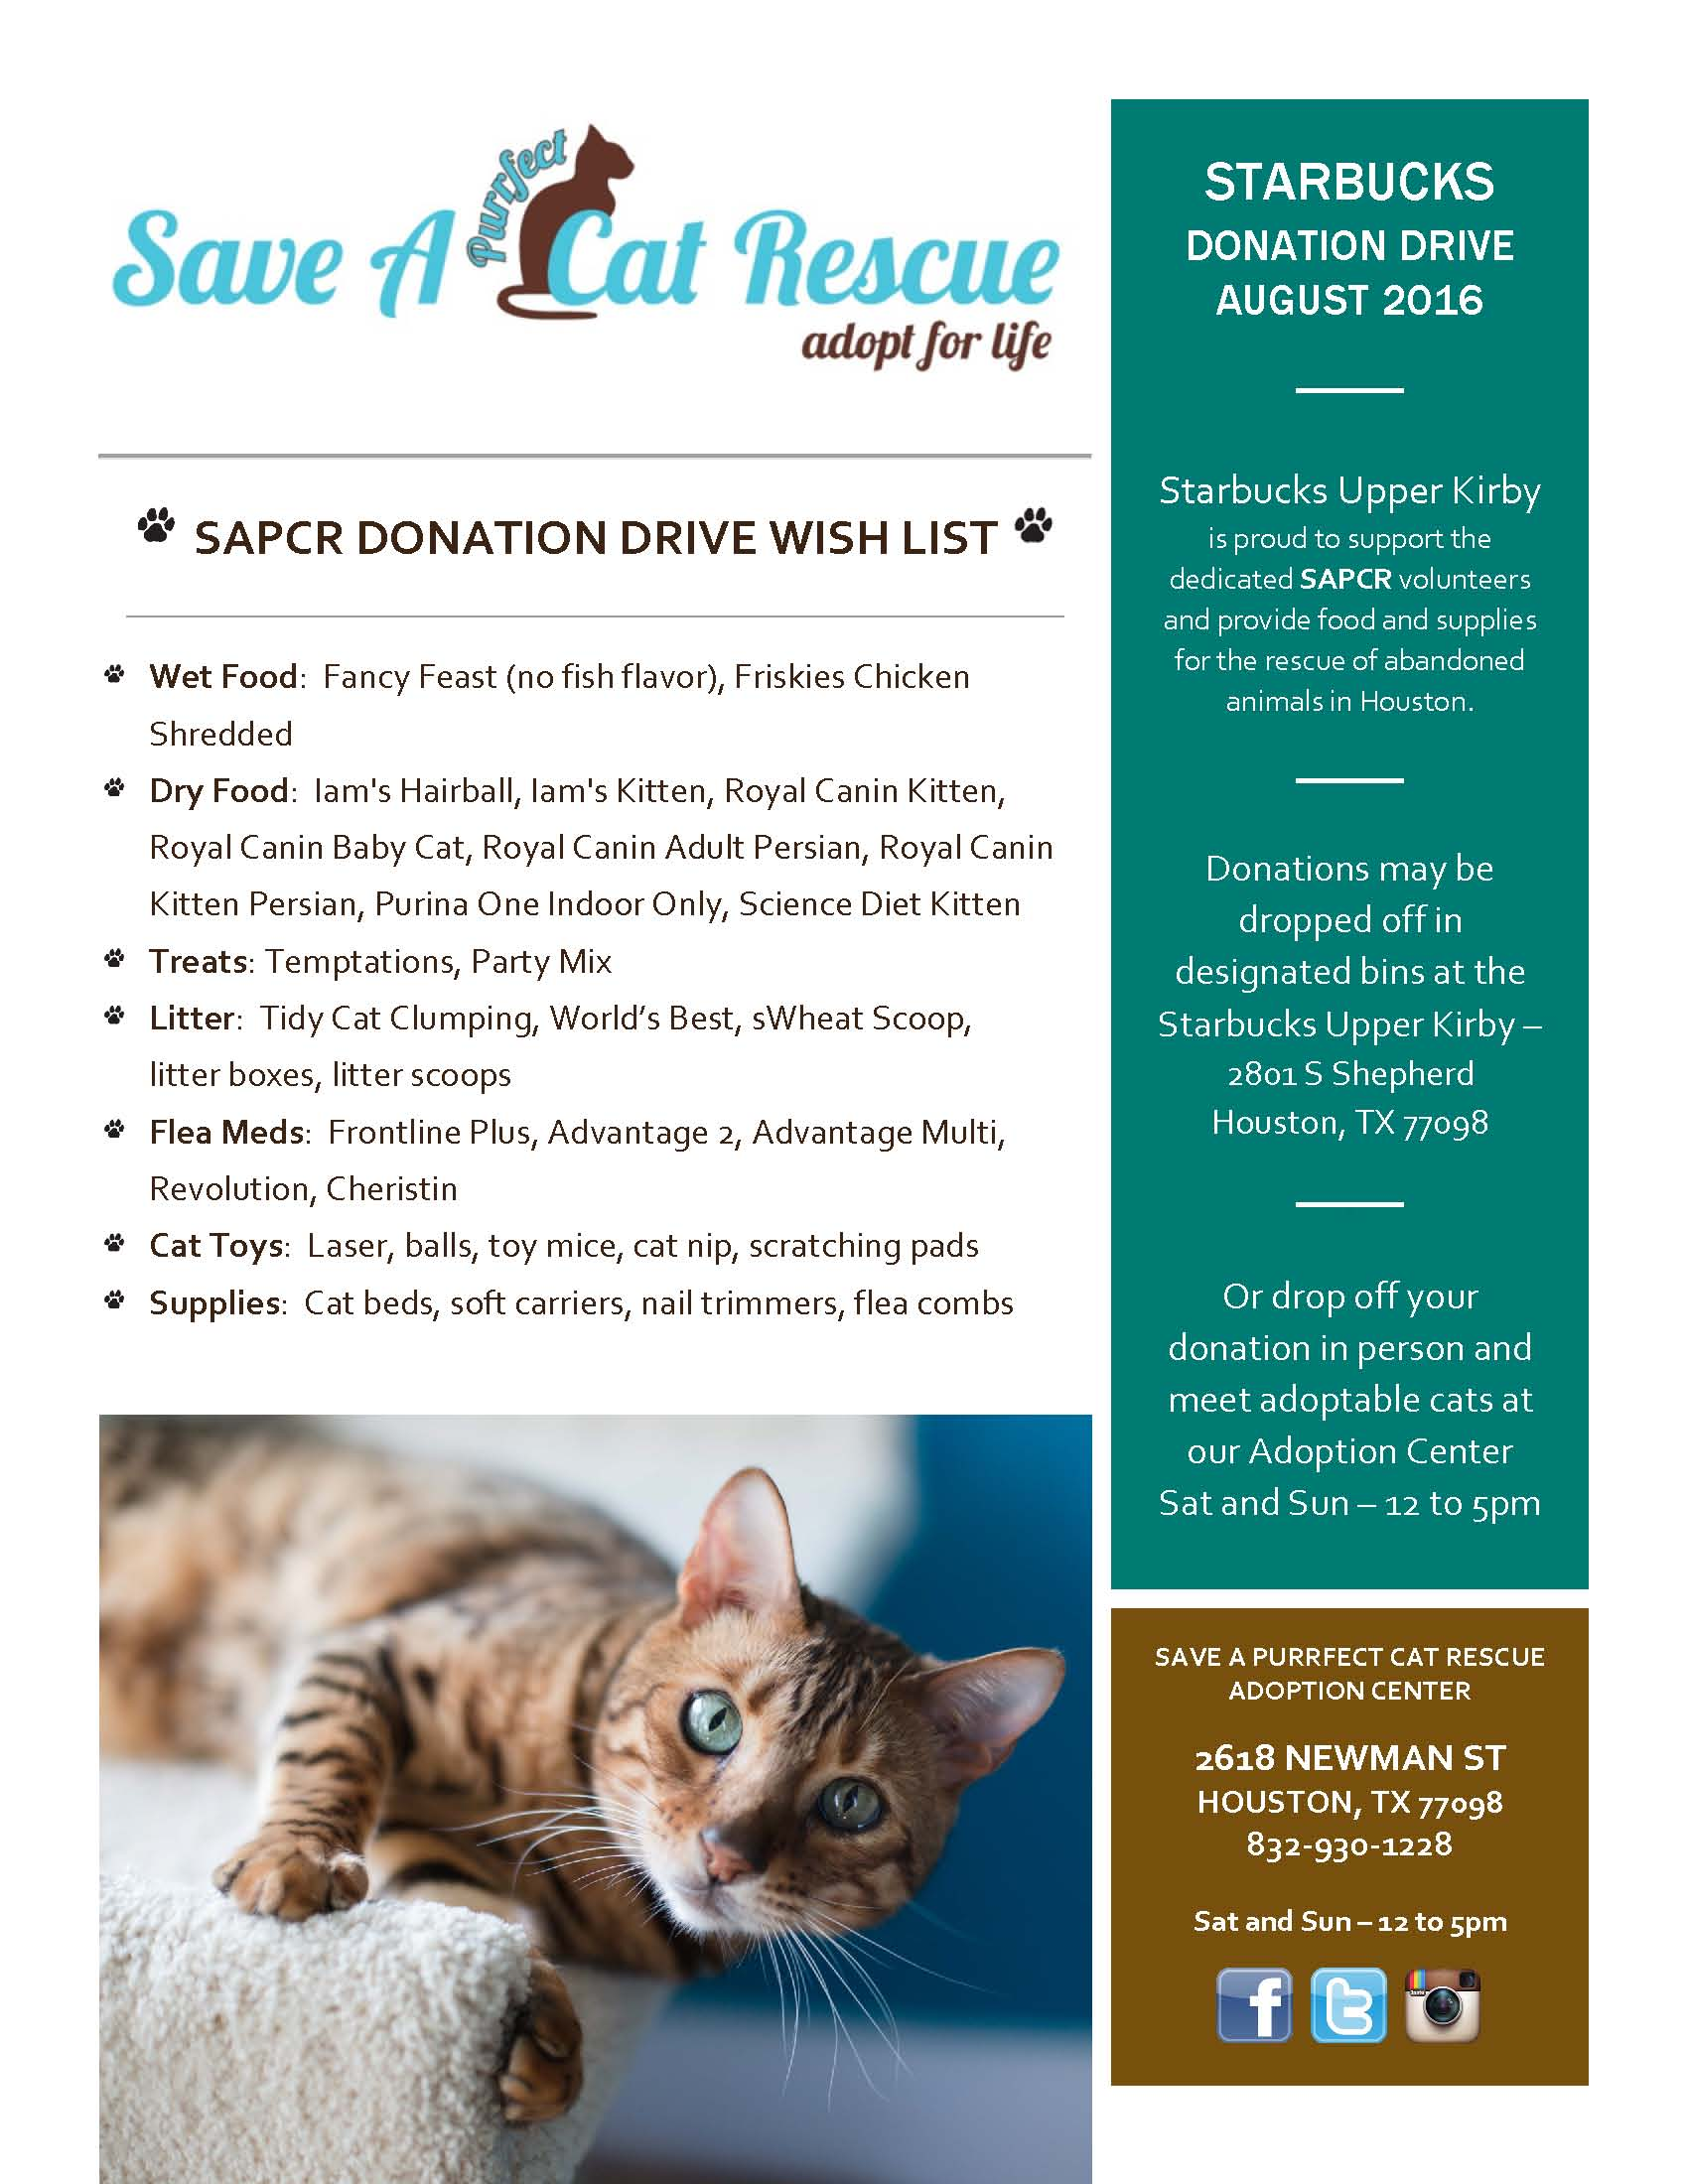 Donation Drive August 2016